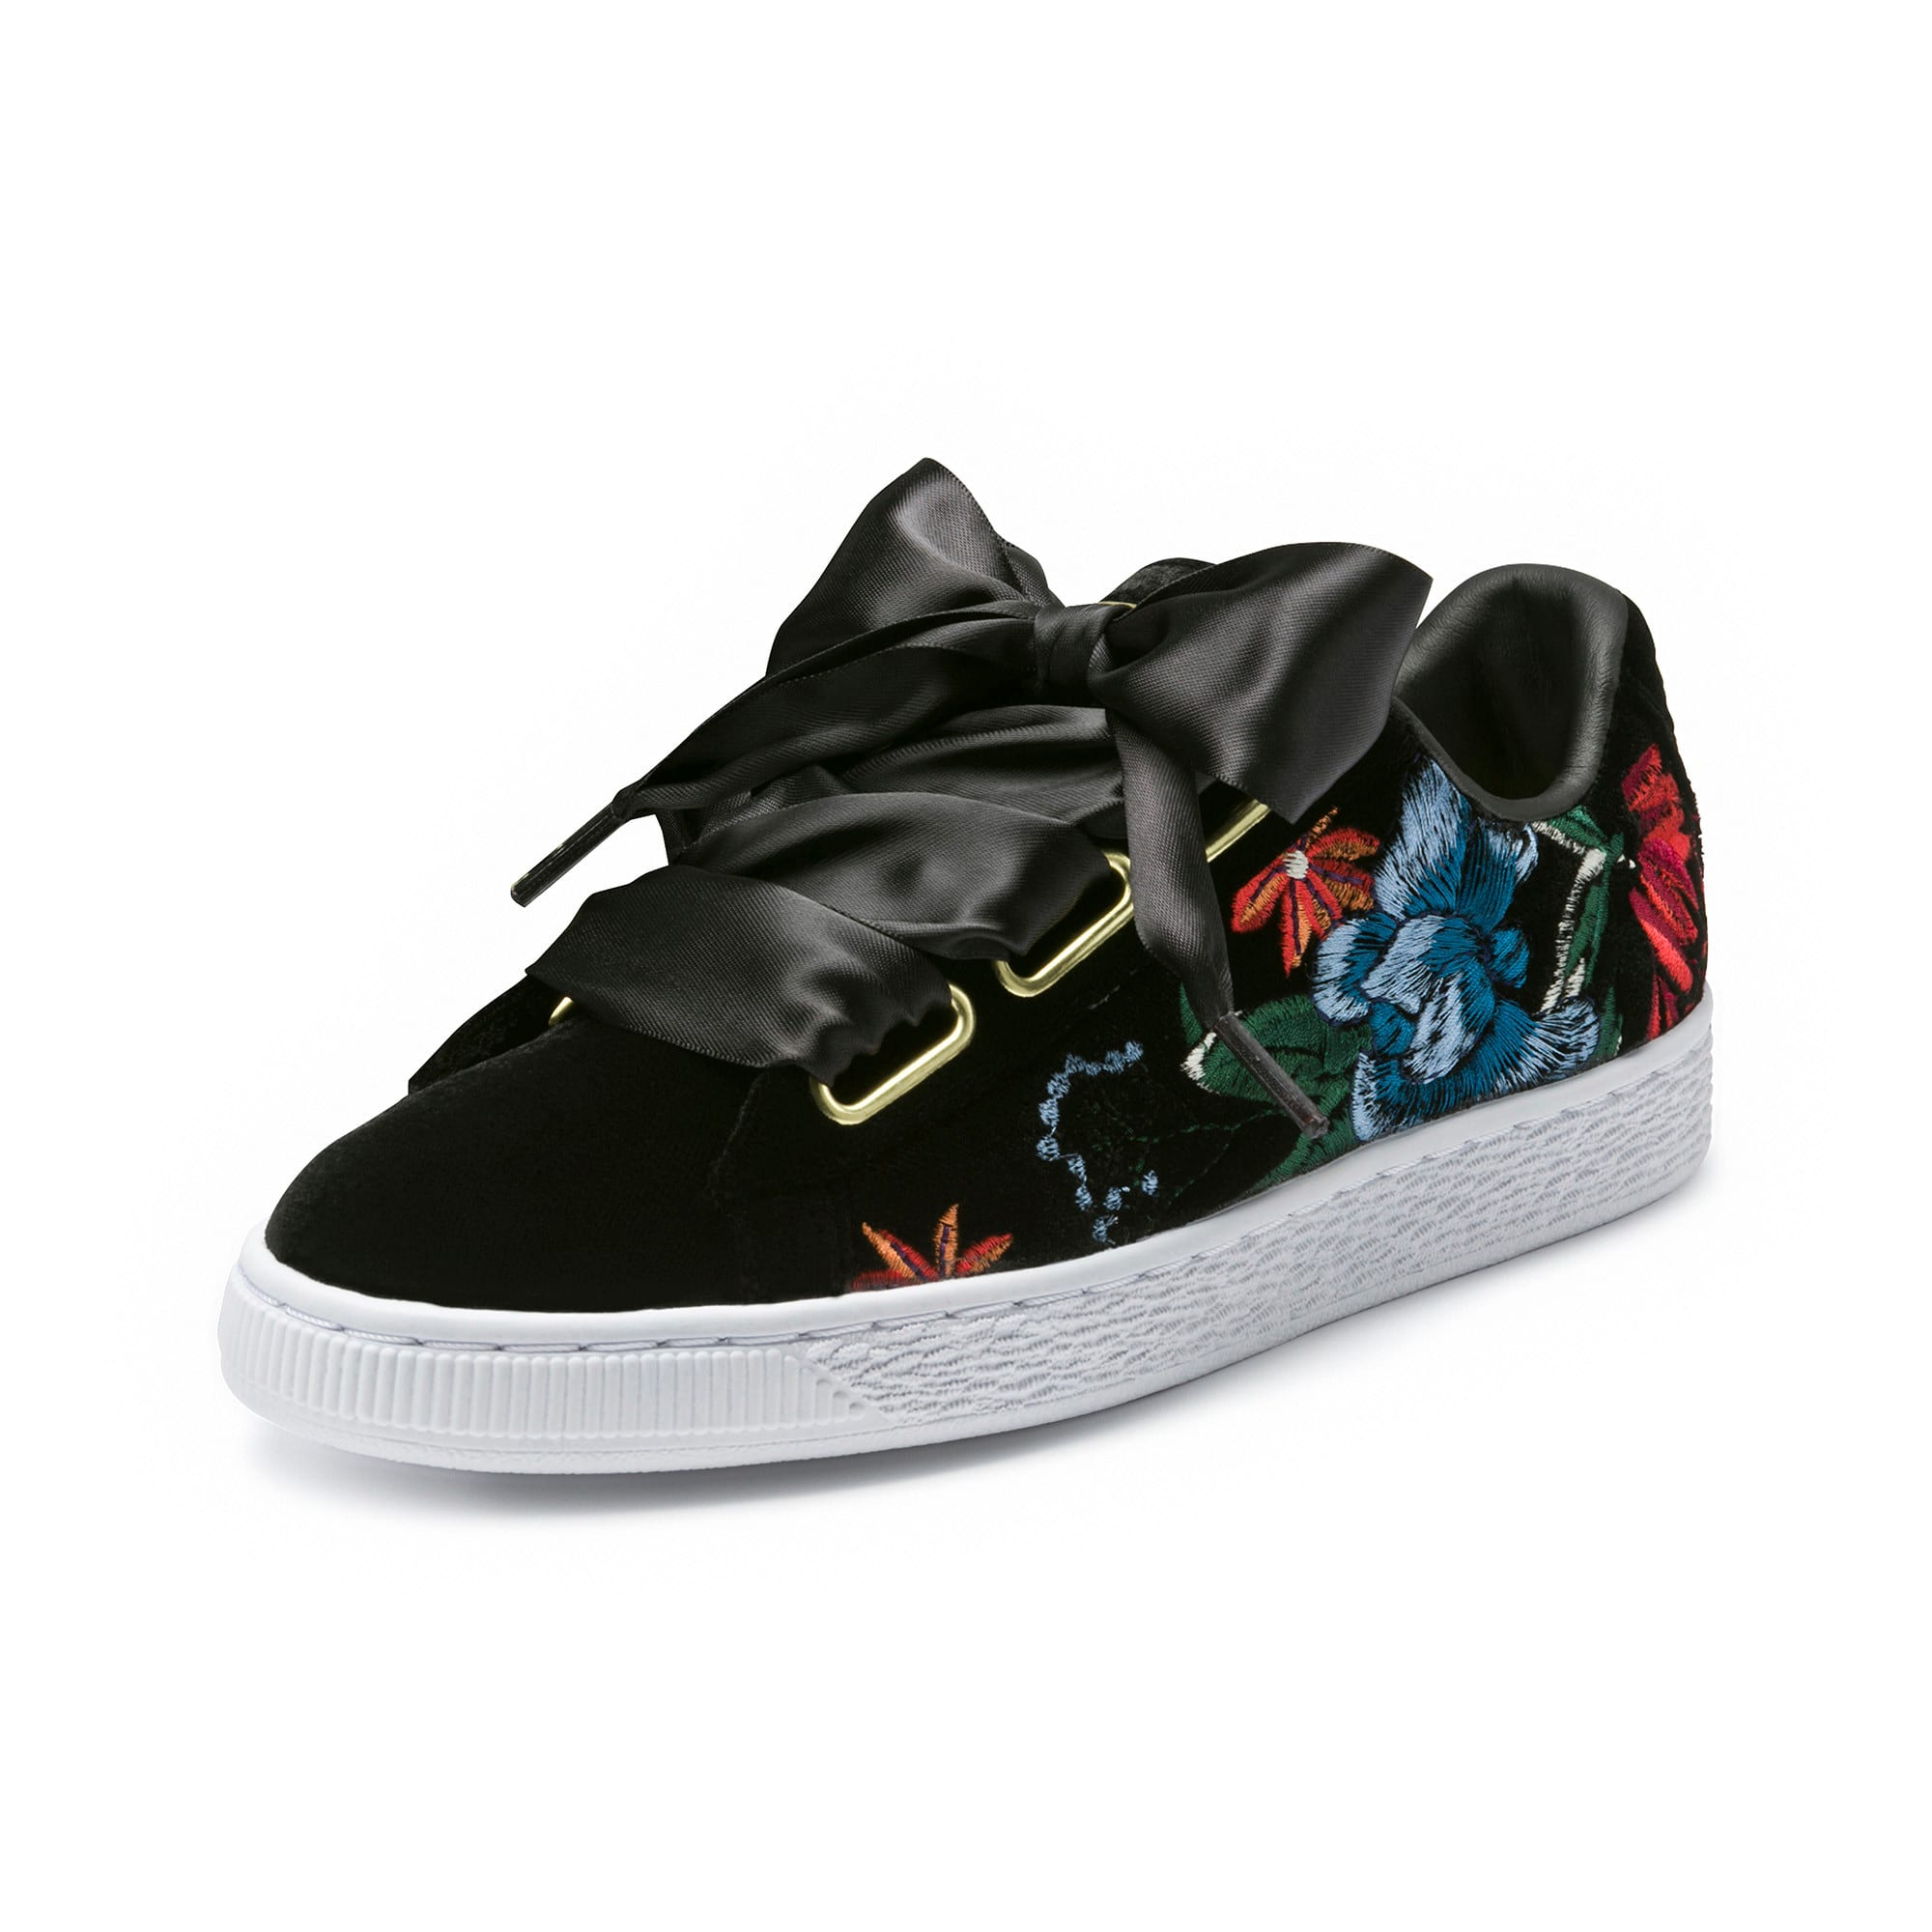 Thumbnail 1 of Basket Heart Hyper Embroidery Women's Trainers, Puma Black, medium-IND